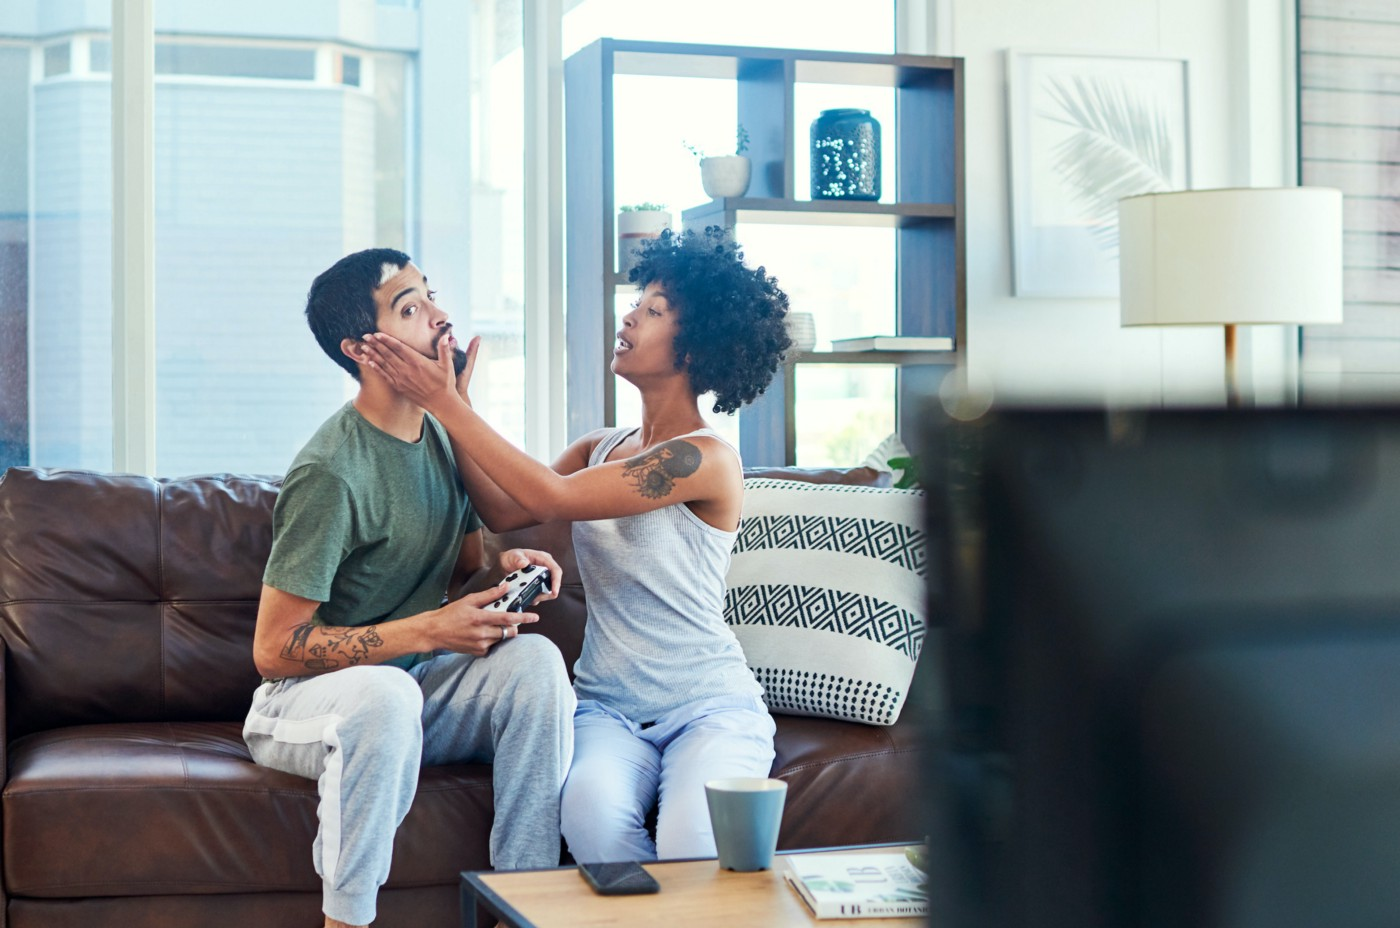 A couple sitting on a couch. One has their hands on the face of the other, who is distracted playing video games.